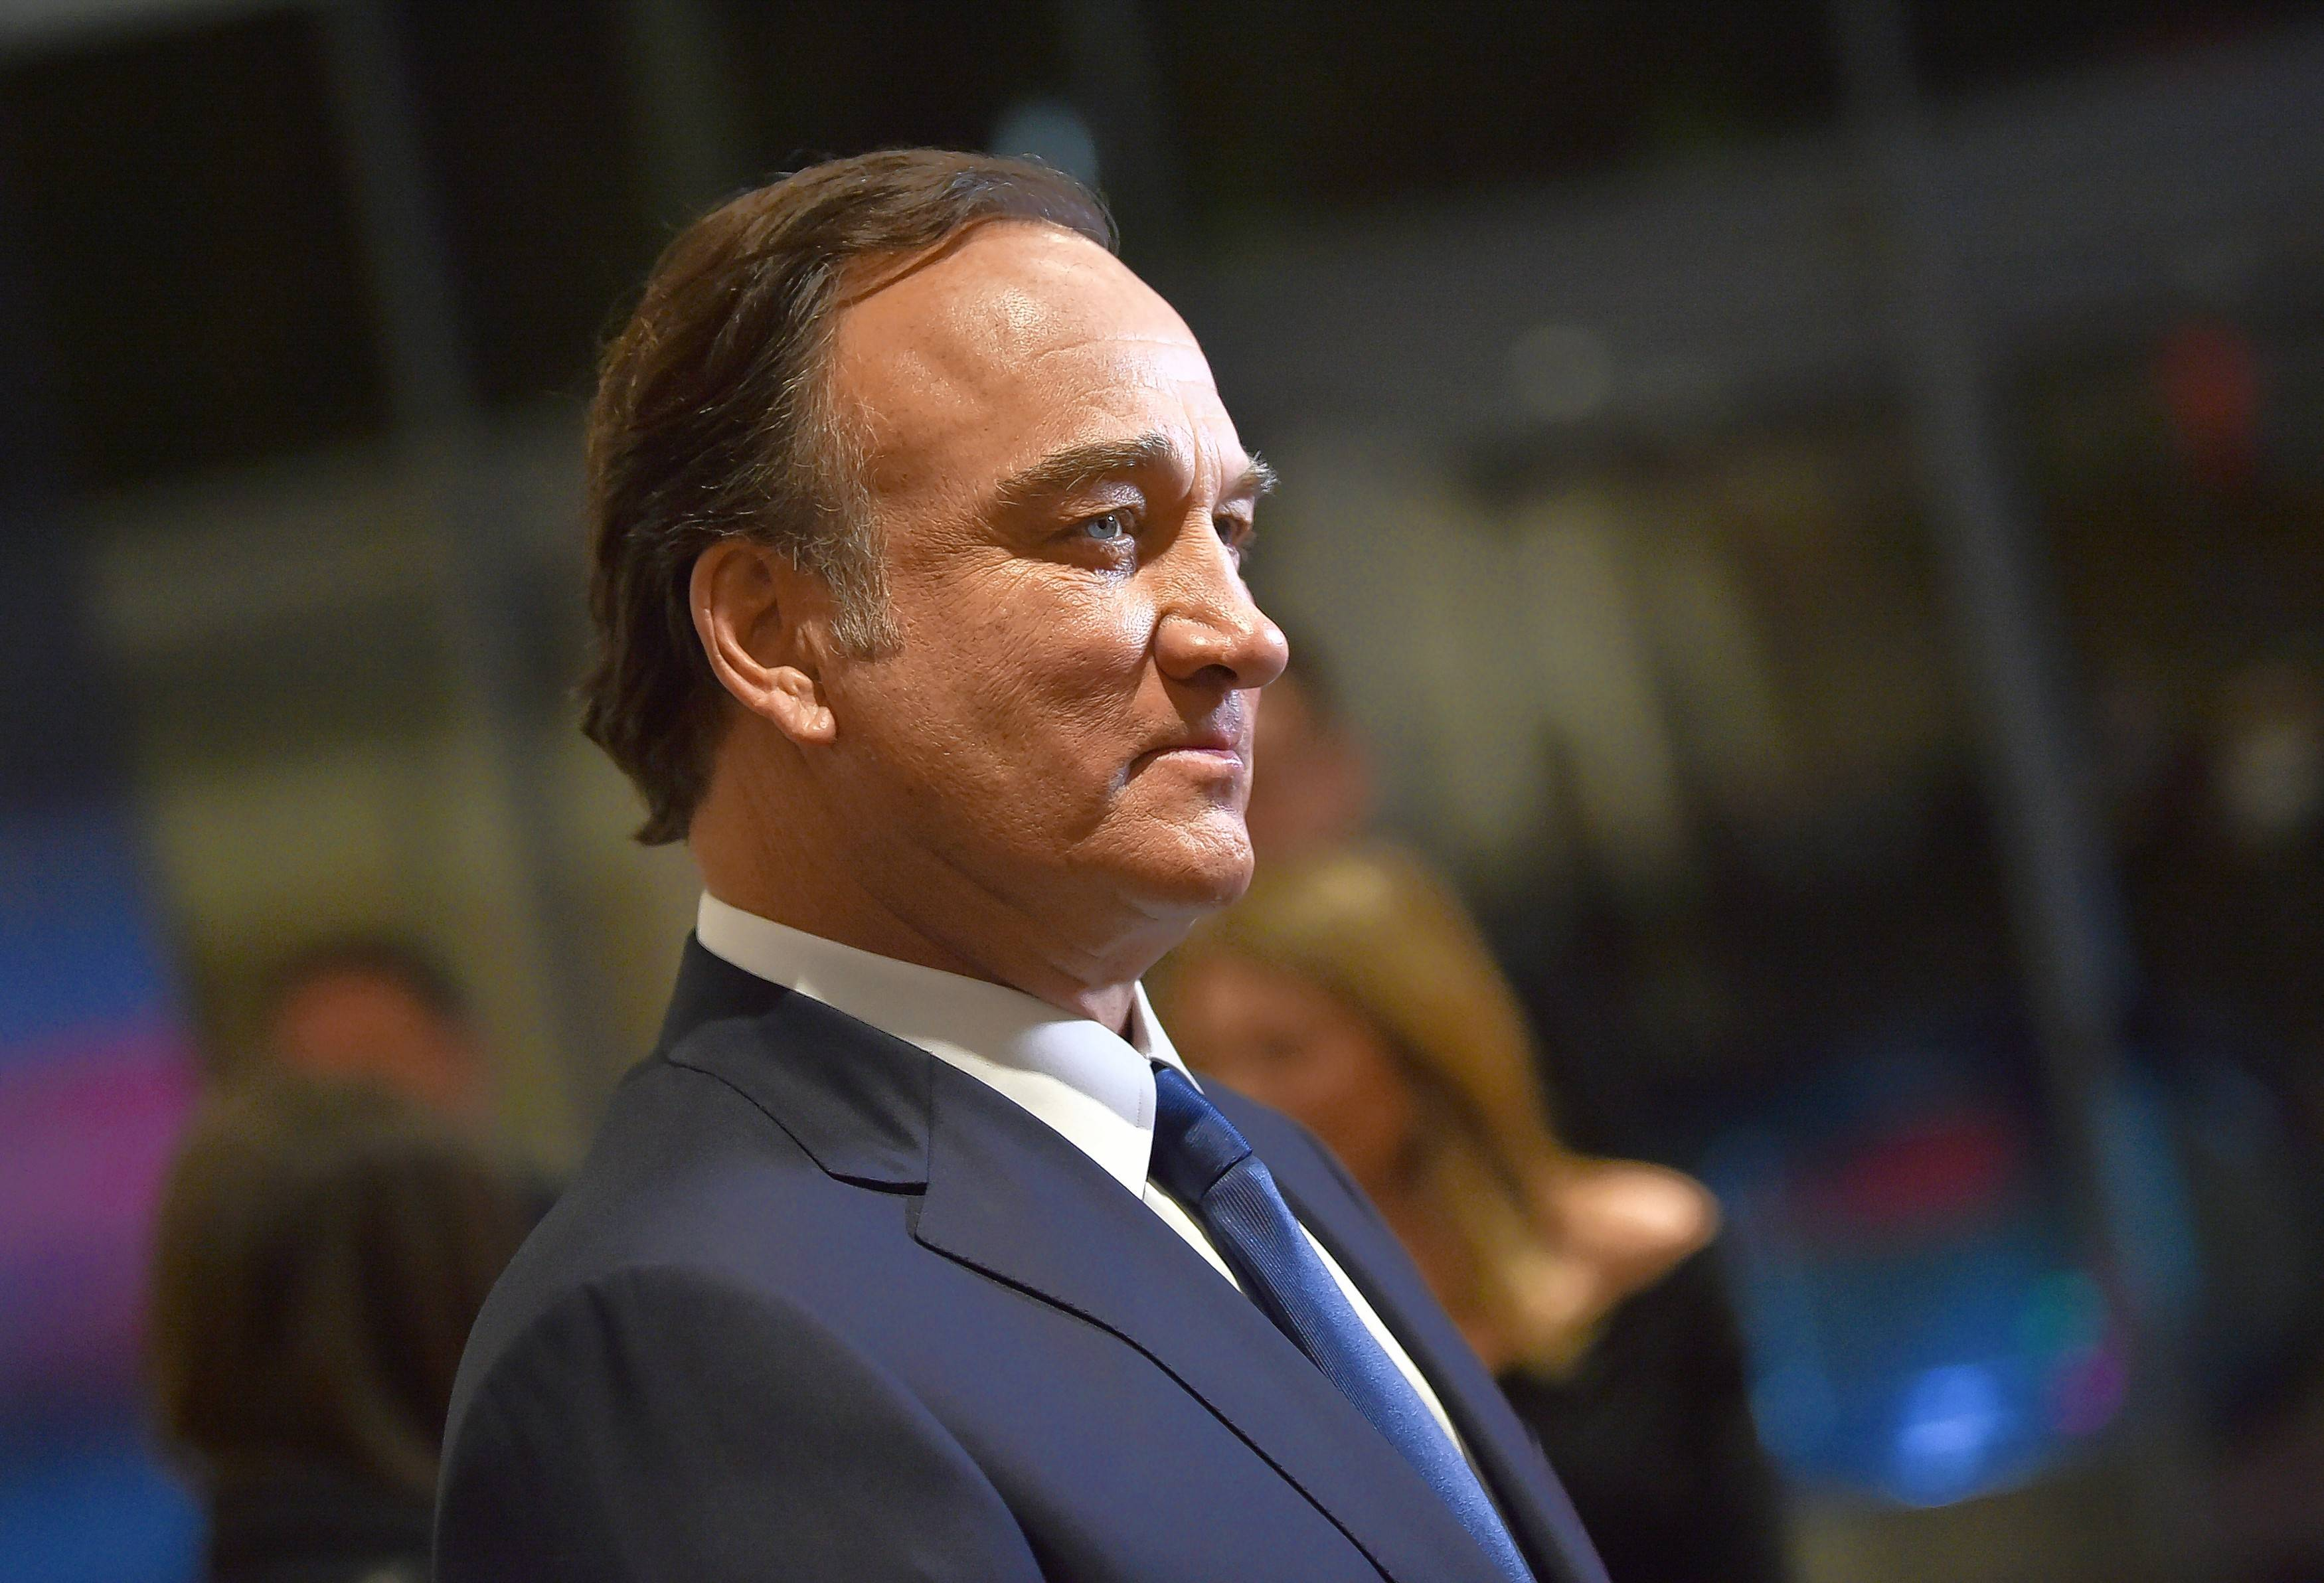 Jim Belushi and The Board of Comedy perform at the Genesee Theatre in Waukegan at 8 p.m. Saturday, Jan. 13.